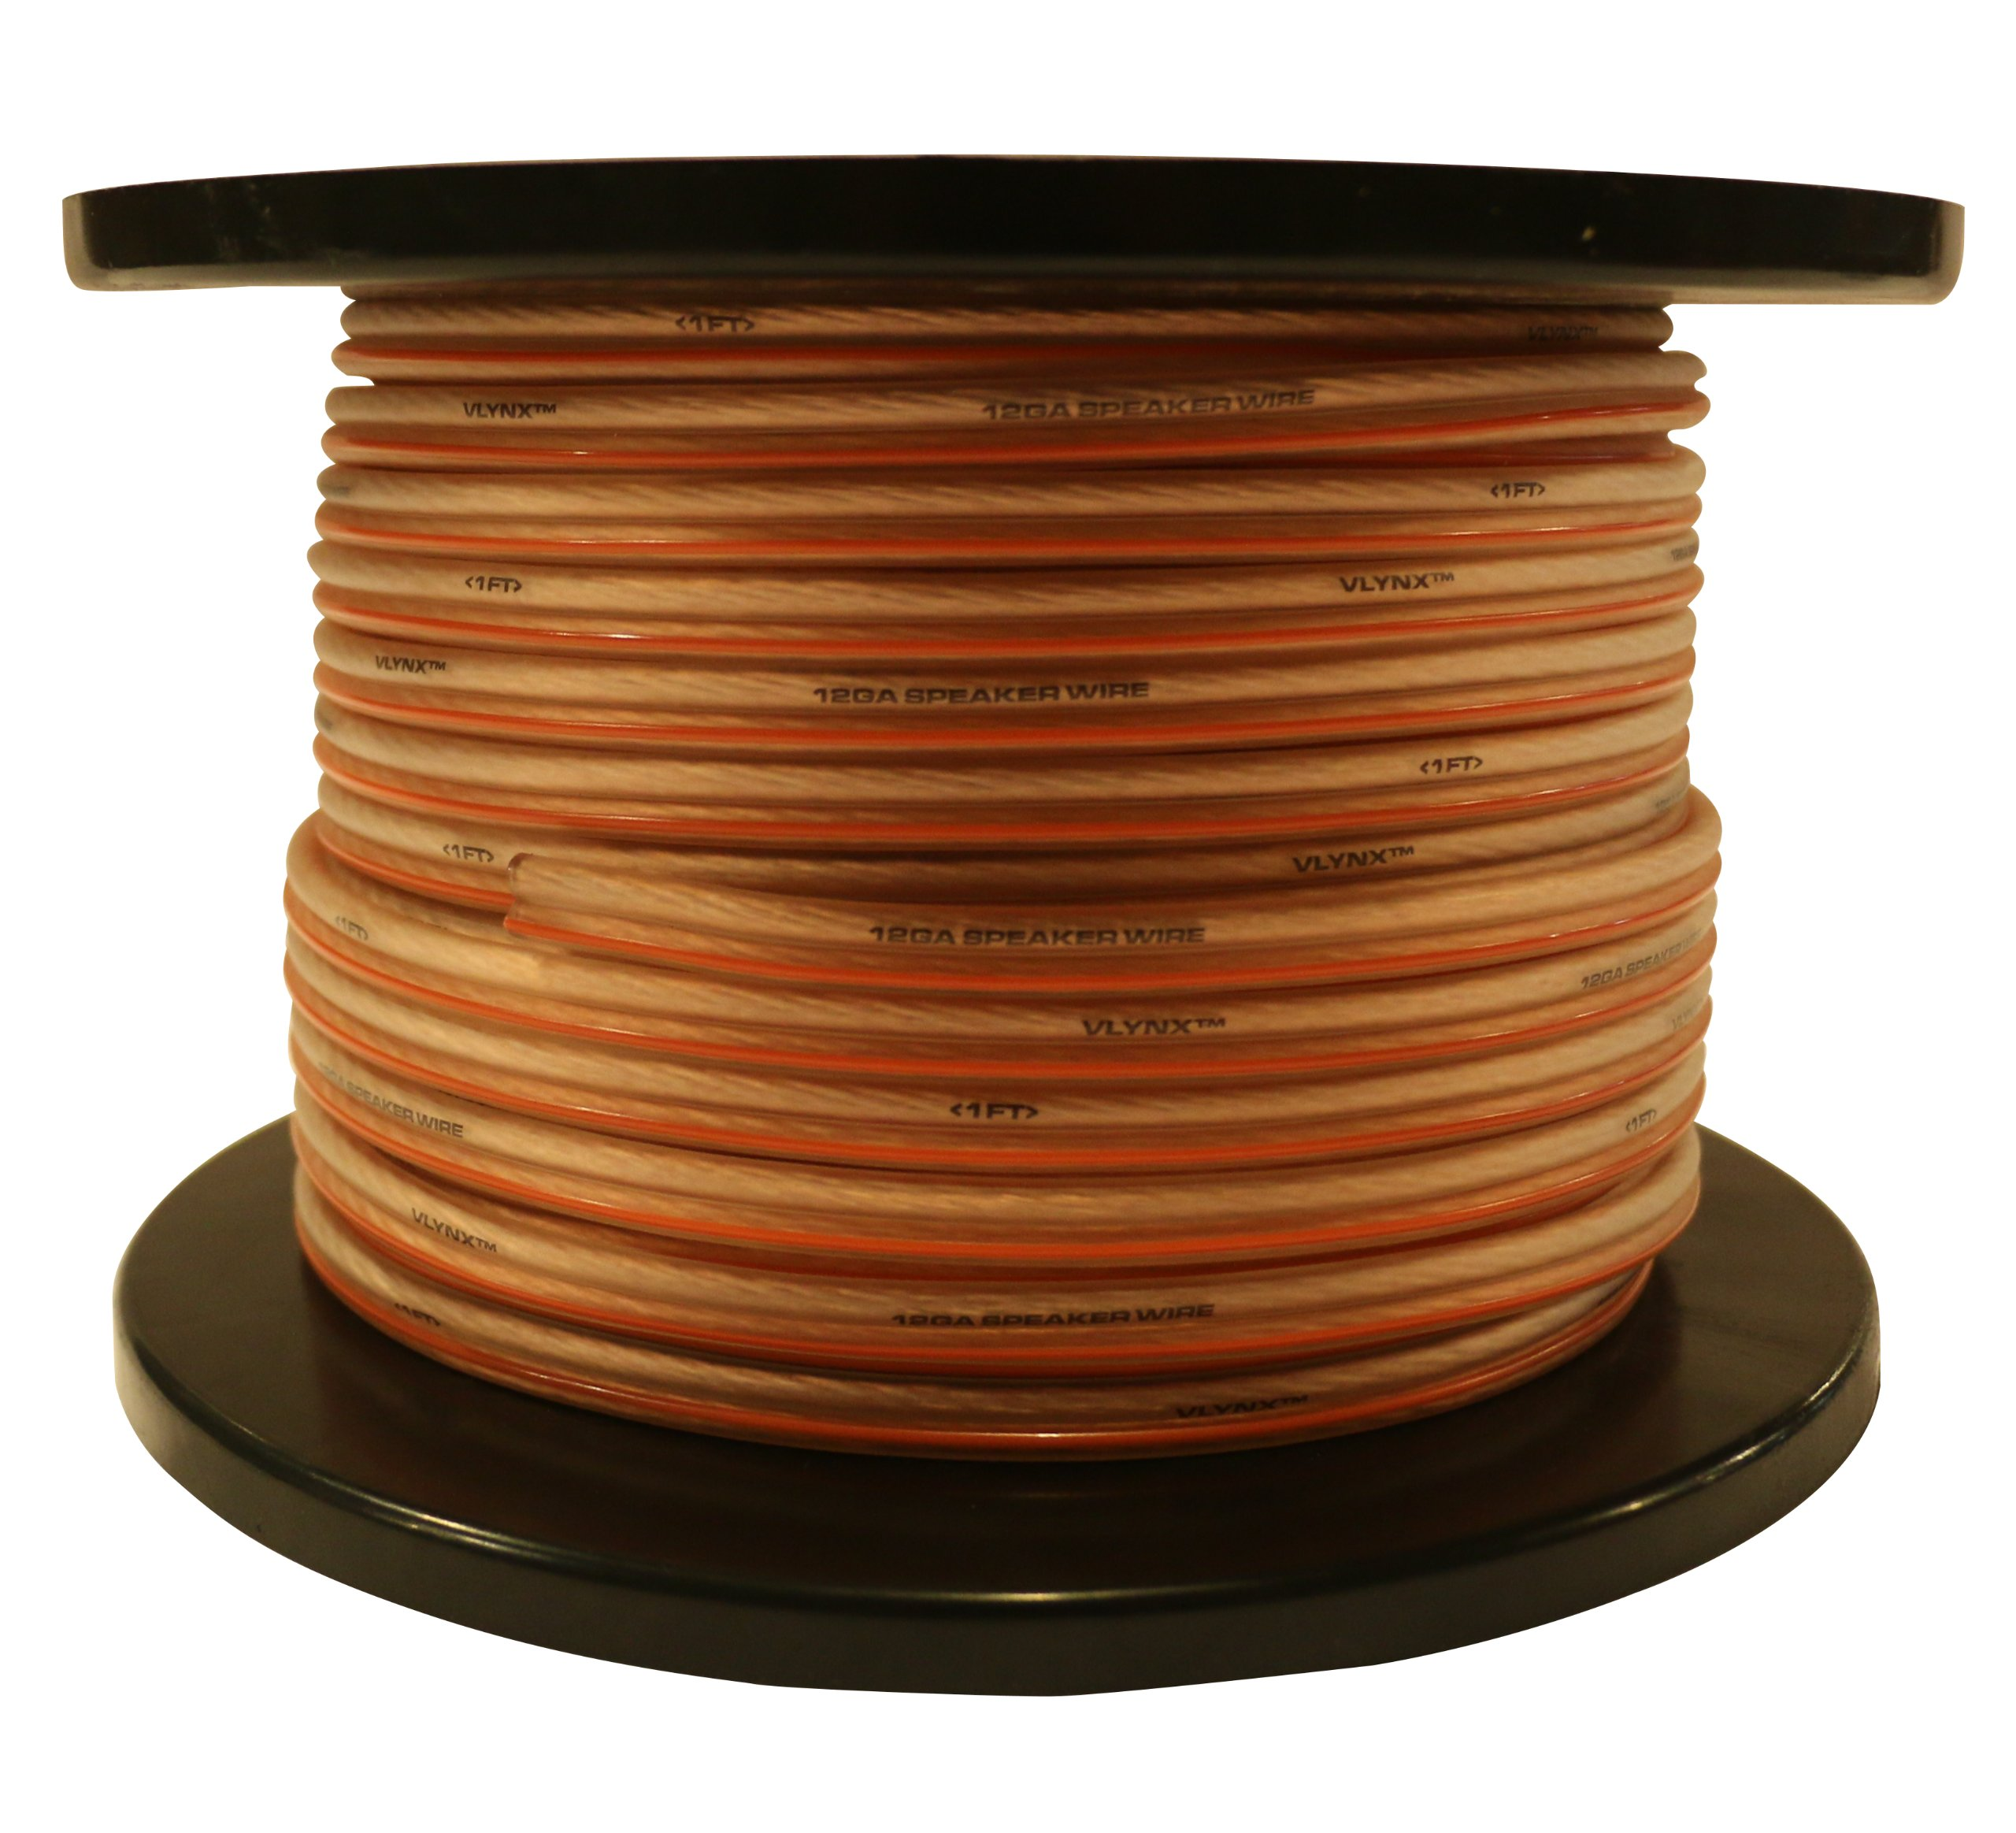 VLYNX Premium 12 Gauge 200 Feet True 12AWG Vlynx Speaker Cable Wire. High Quality, Flexible, 12AWG-200' Speaker Cable Spool [Positive (+) is marked with a line]